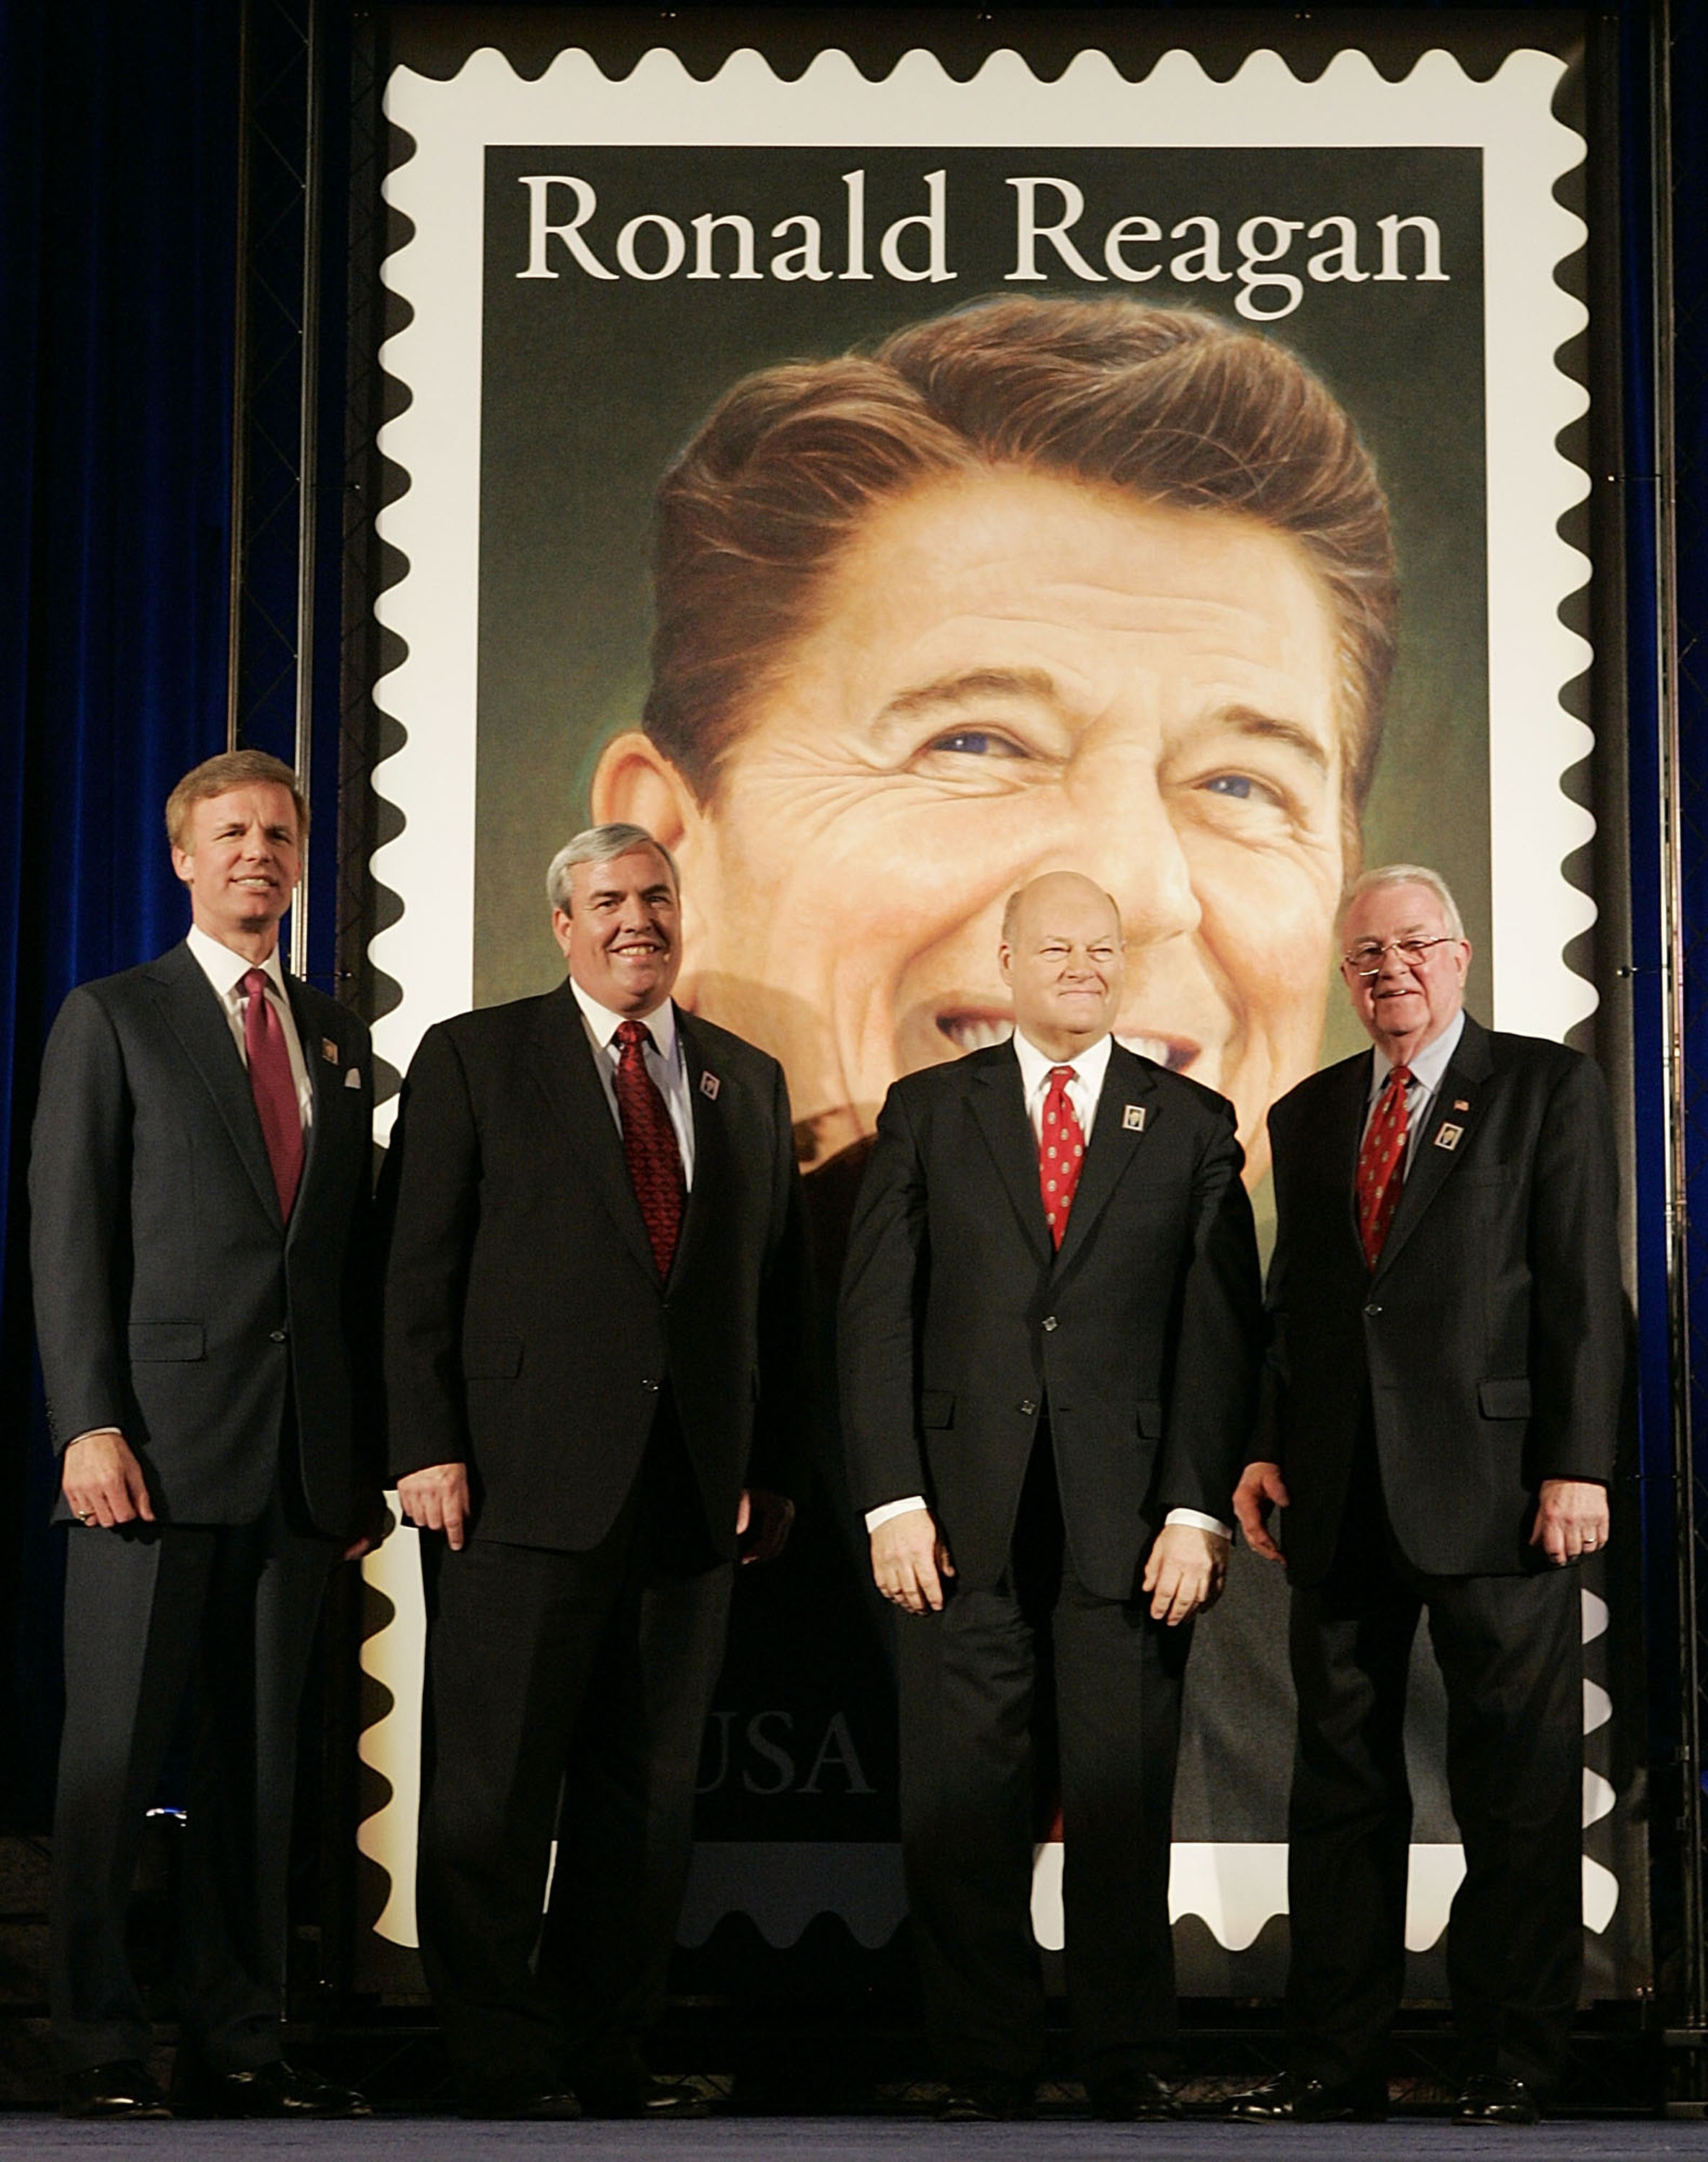 Meese and others from the Reagan administration